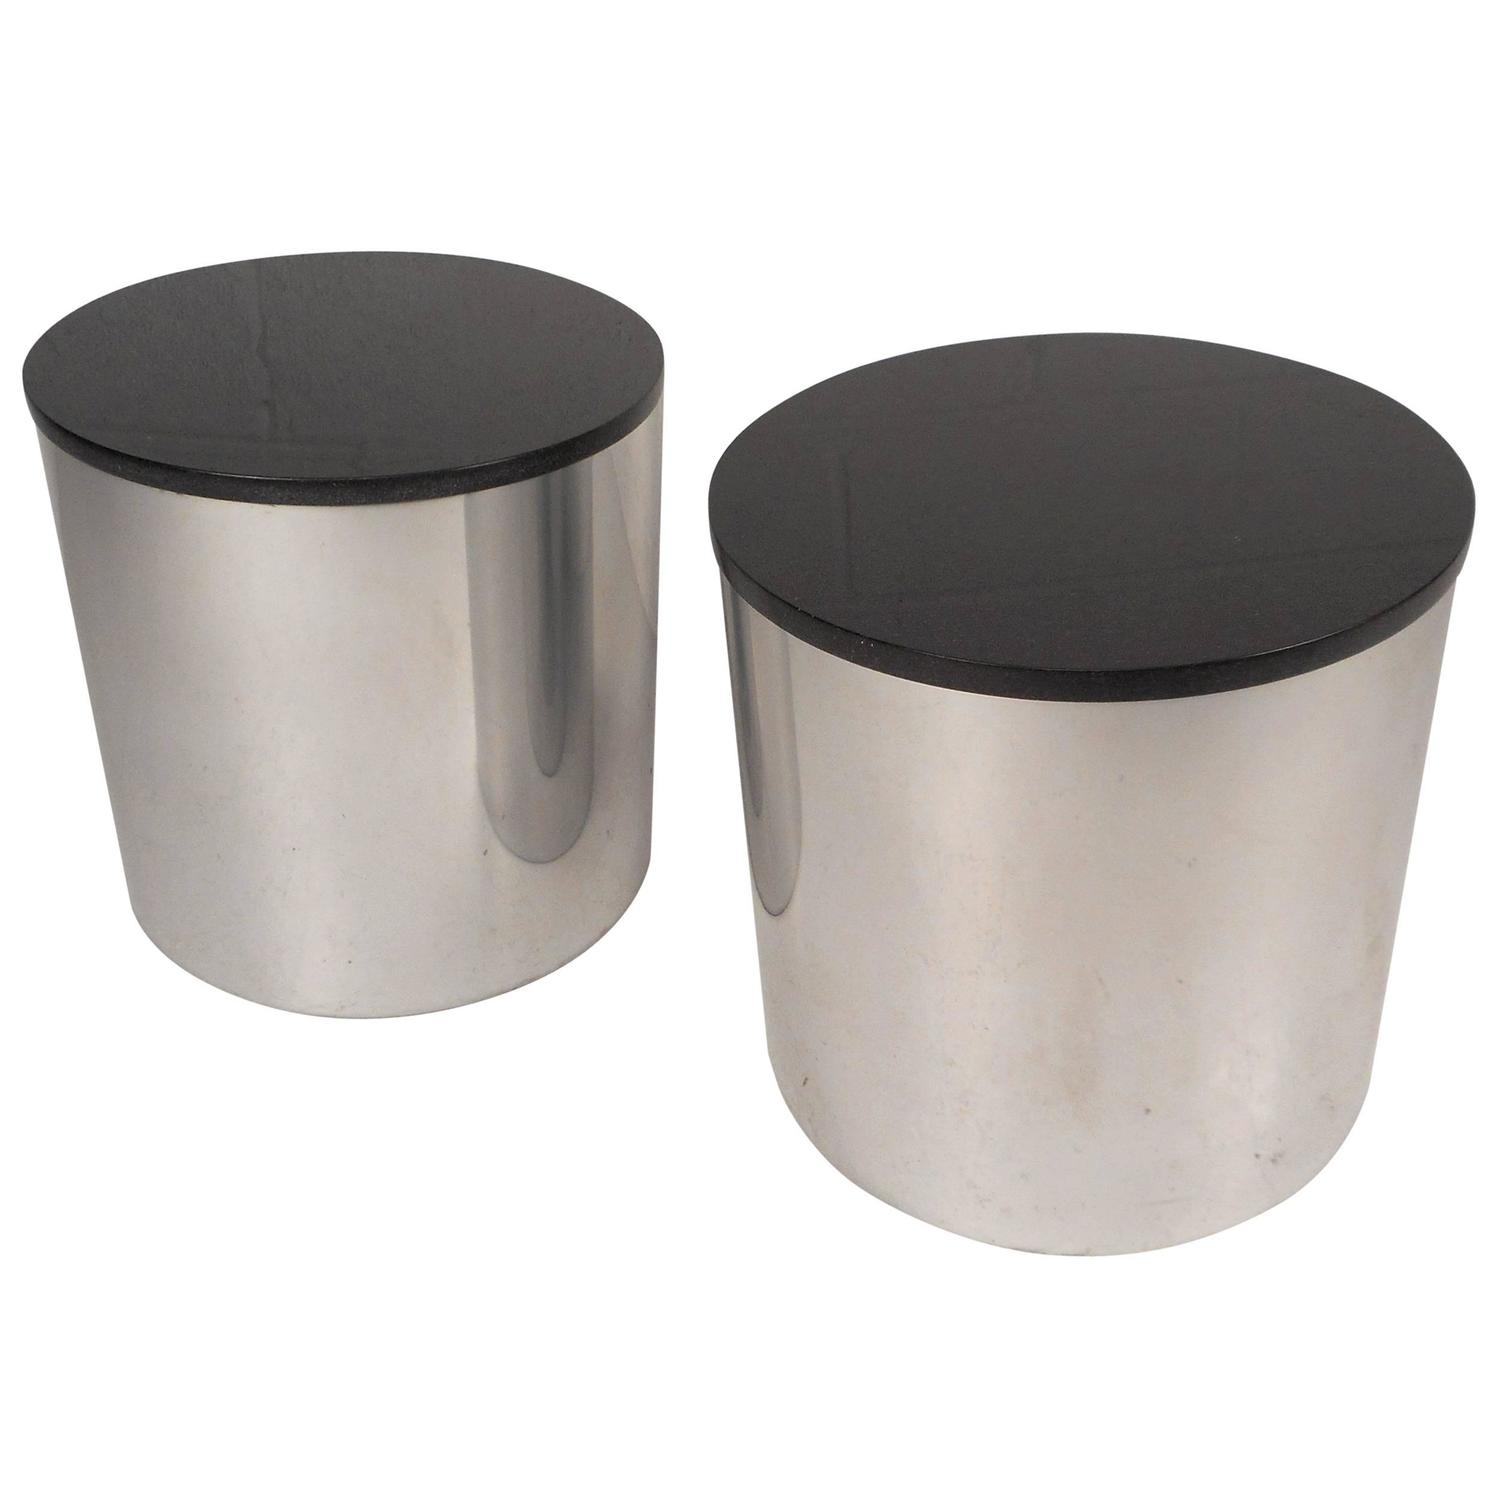 Contemporary Modern Round Granite Top End Tables For Sale at 1stdibs